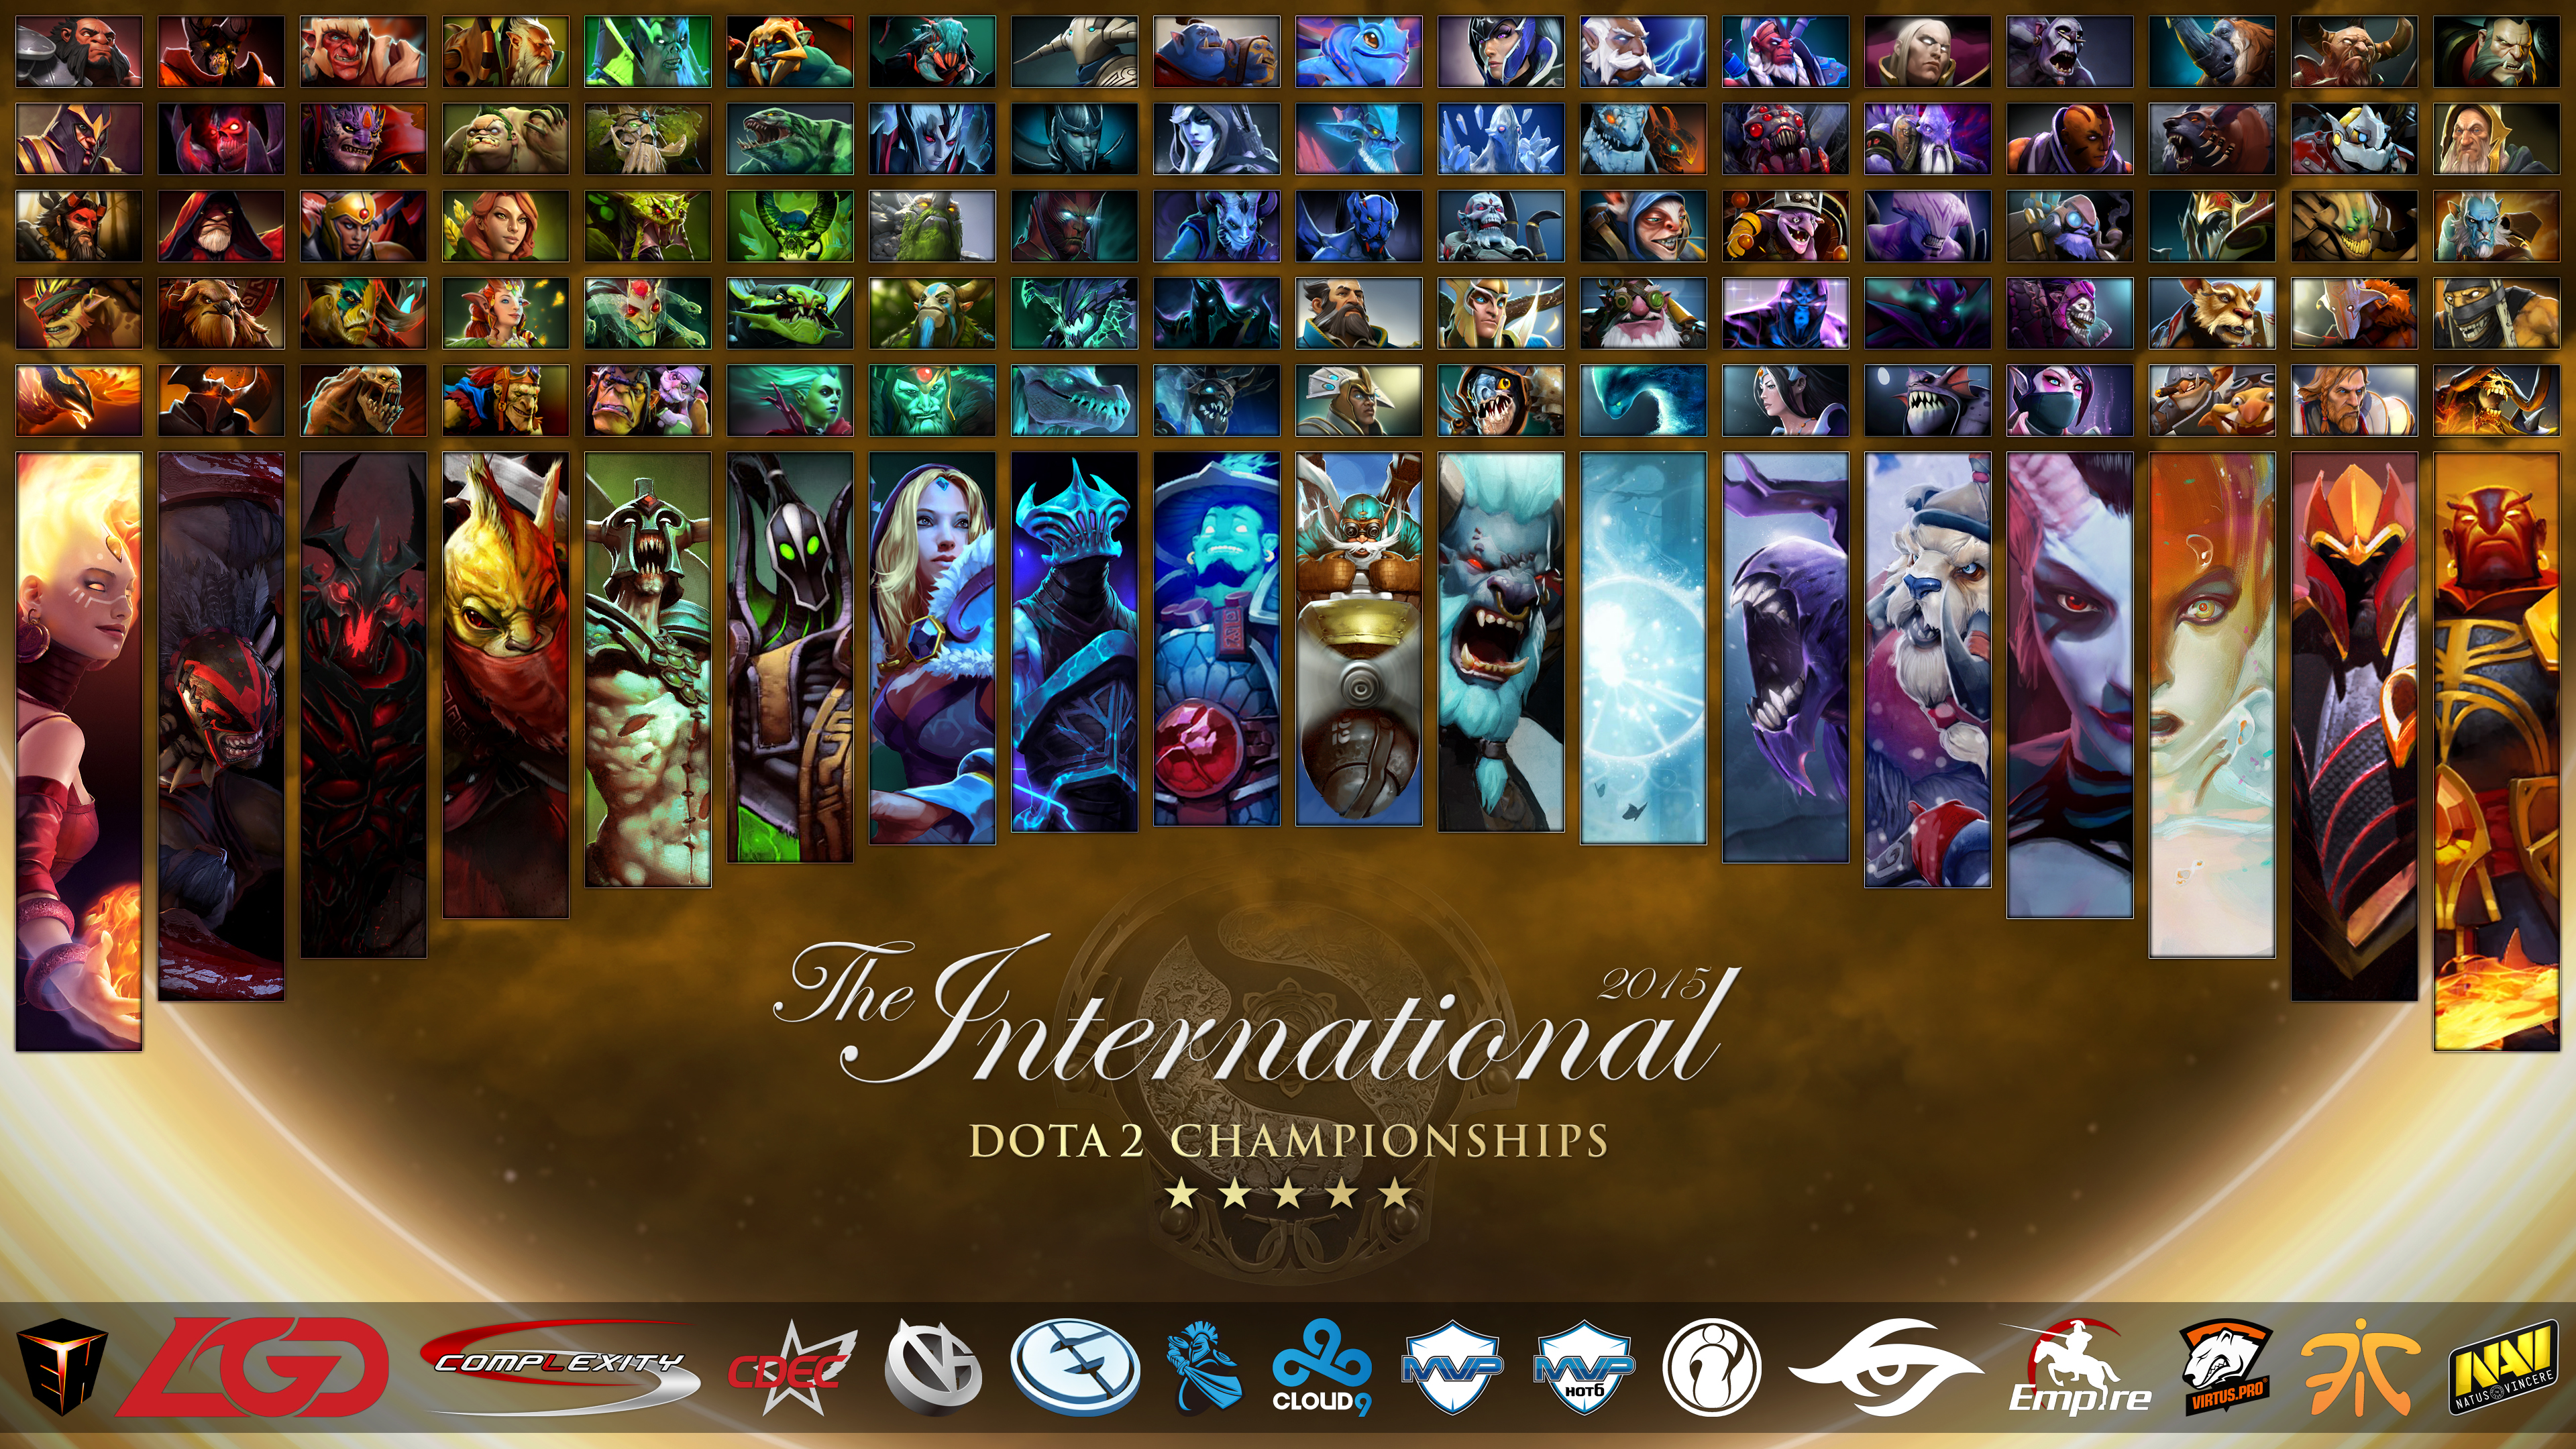 dota 2 tournament prize pools